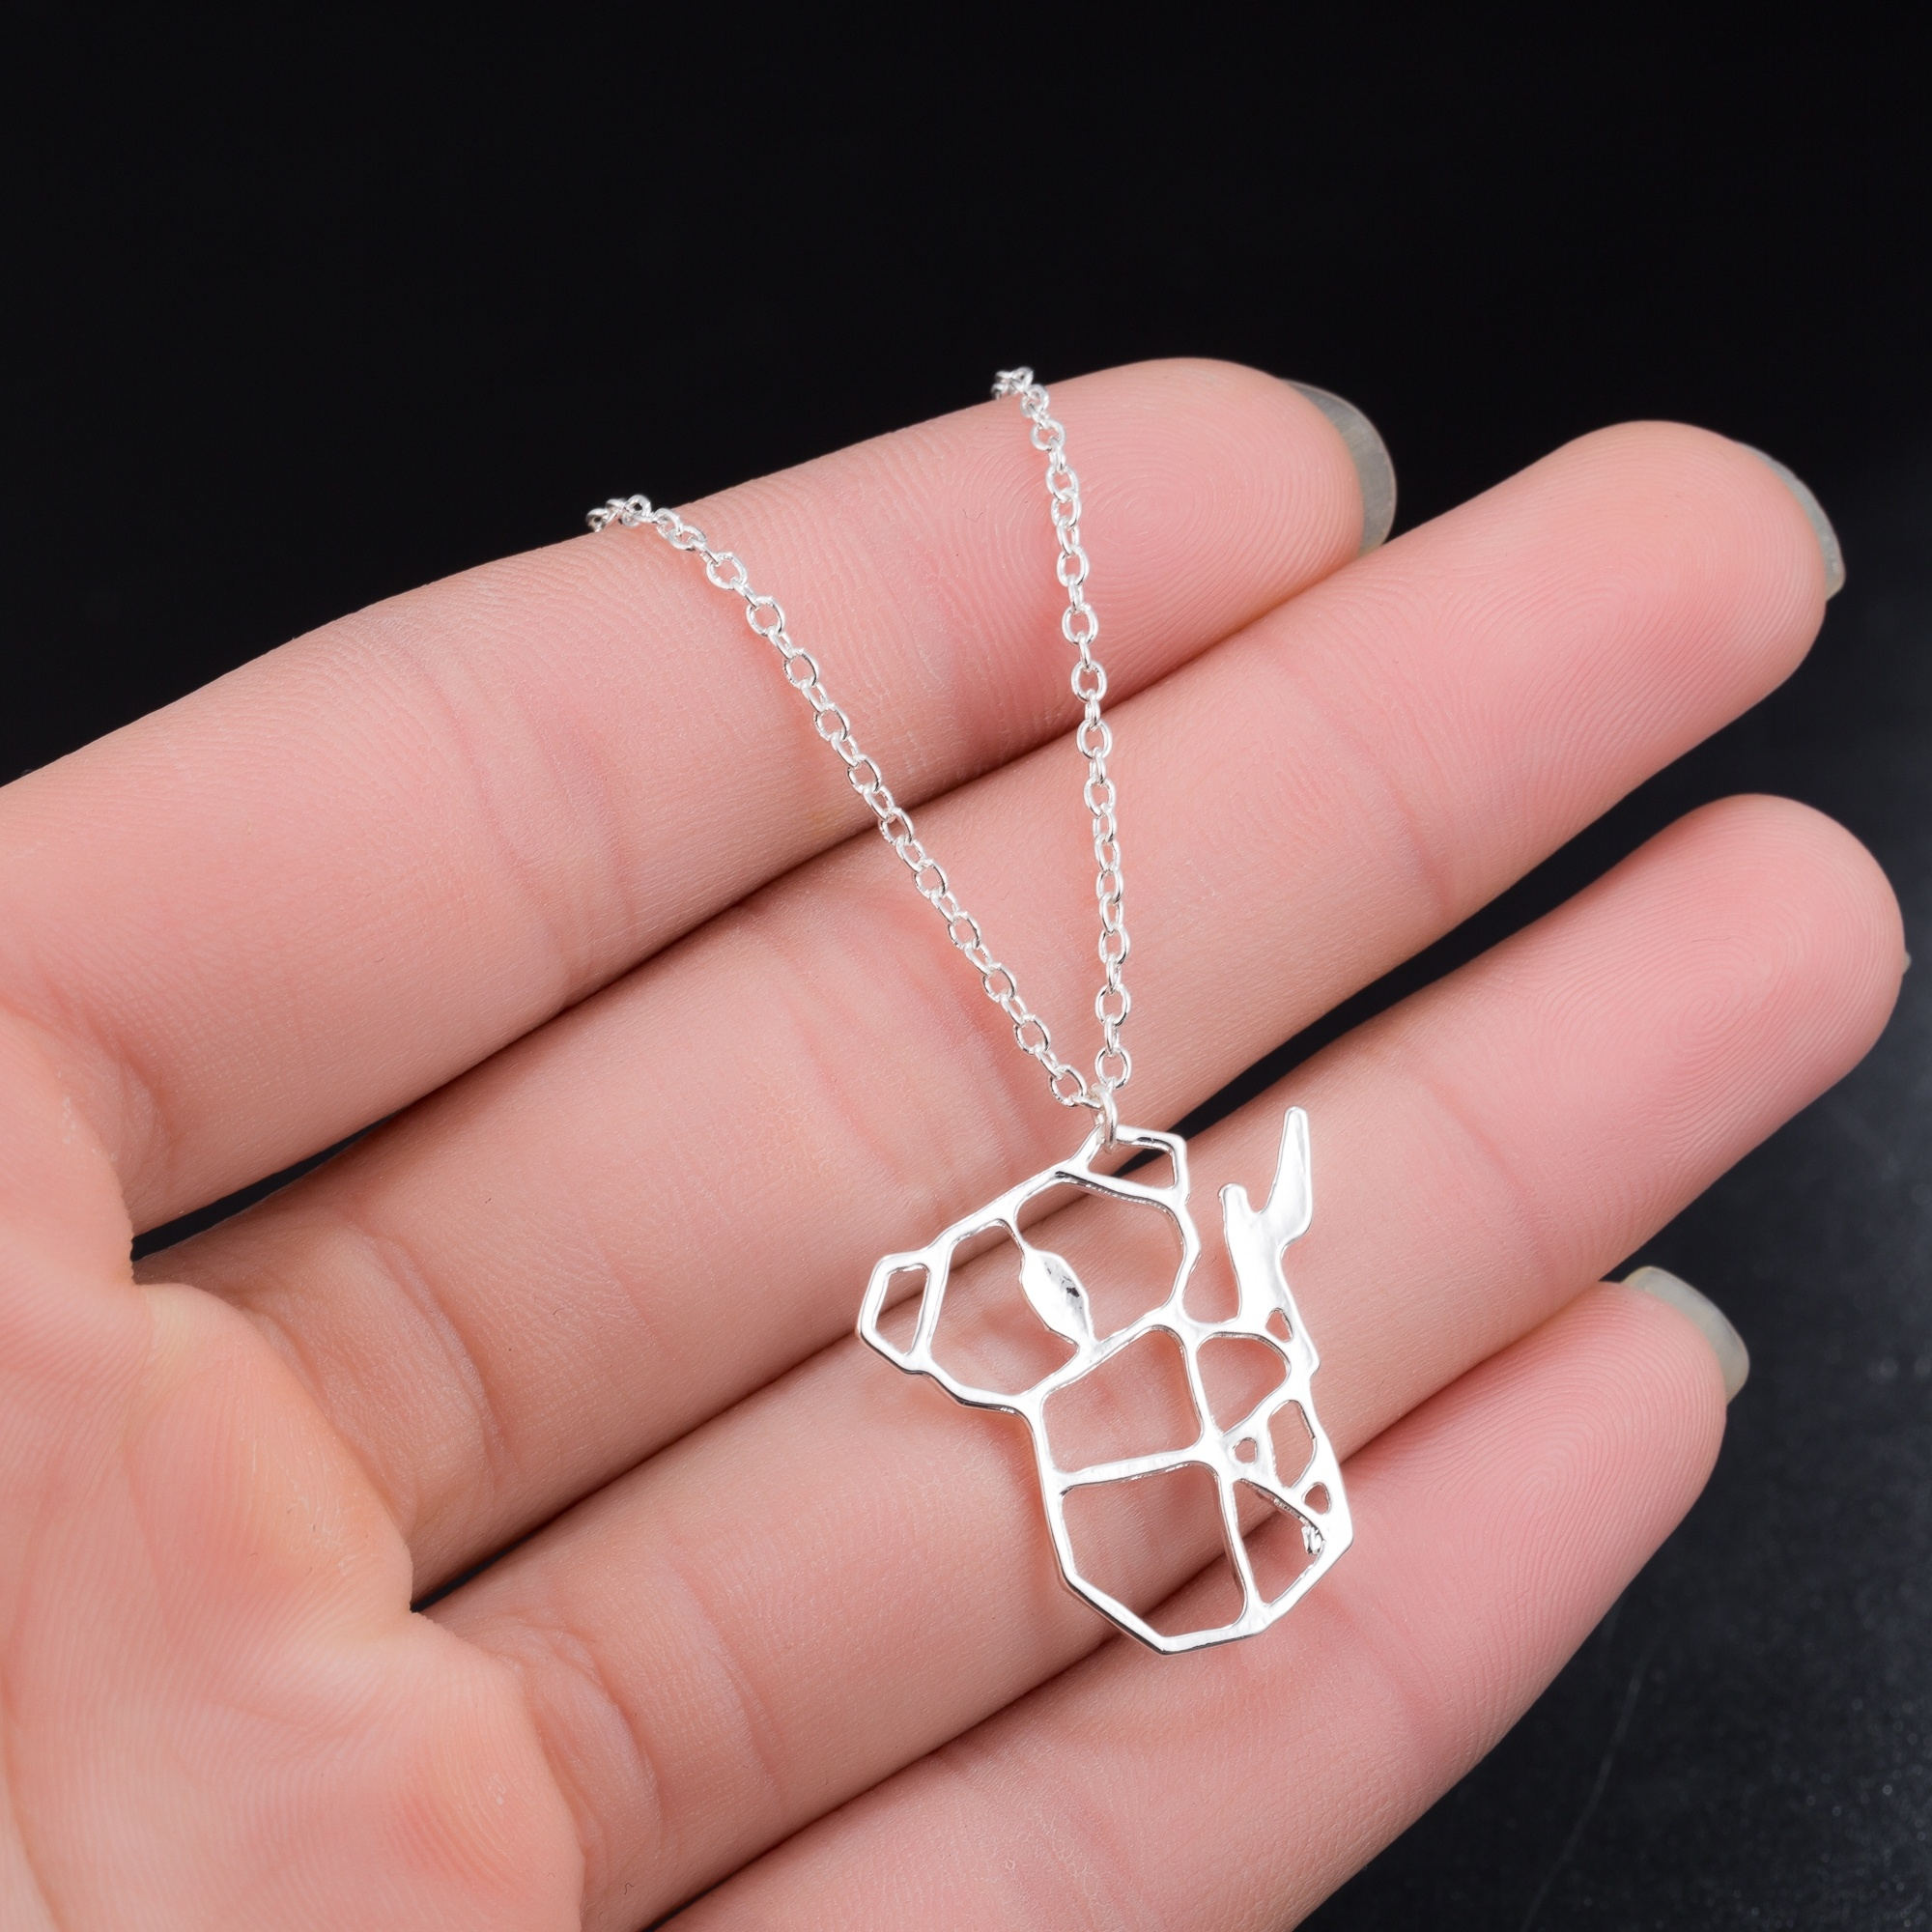 Cute Hollow-out Australian <font><b>Koala</b></font> <font><b>Bear</b></font> Feature Necklace Charm Animal <font><b>Jewelry</b></font> for Women Kids Children Day Gift image